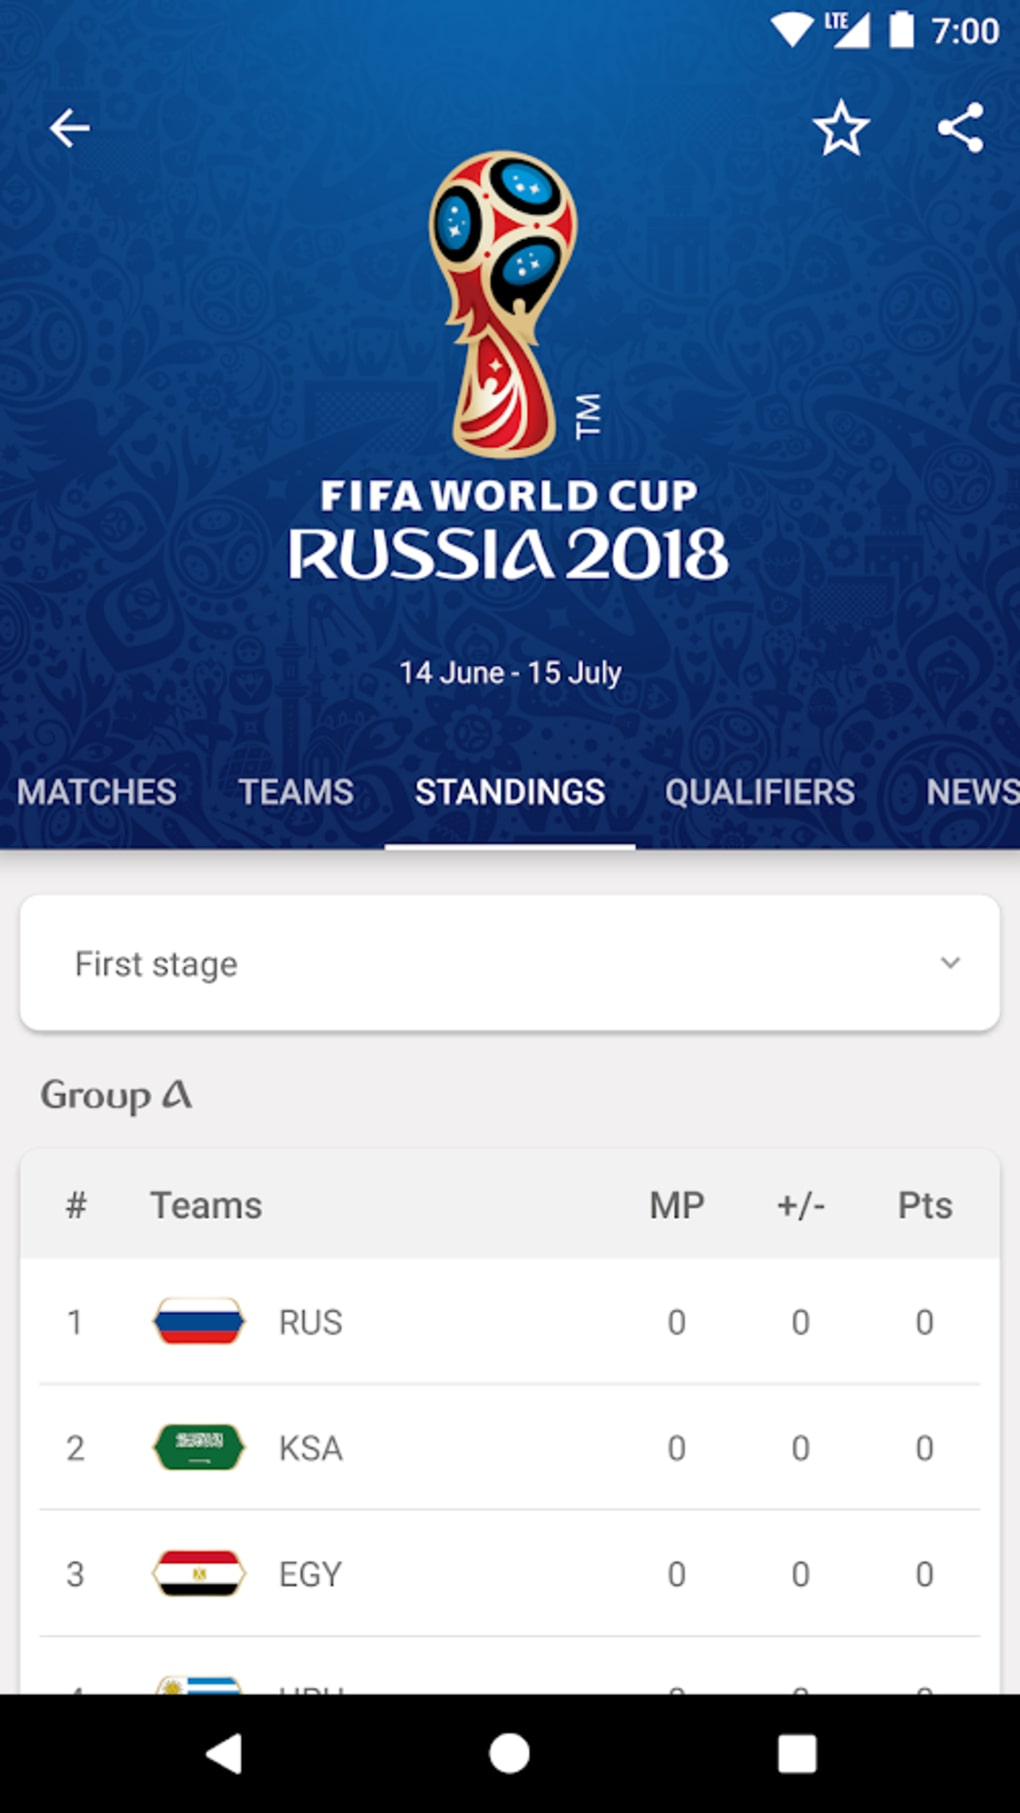 2018 fifa world cup russia for iphone ダウンロード